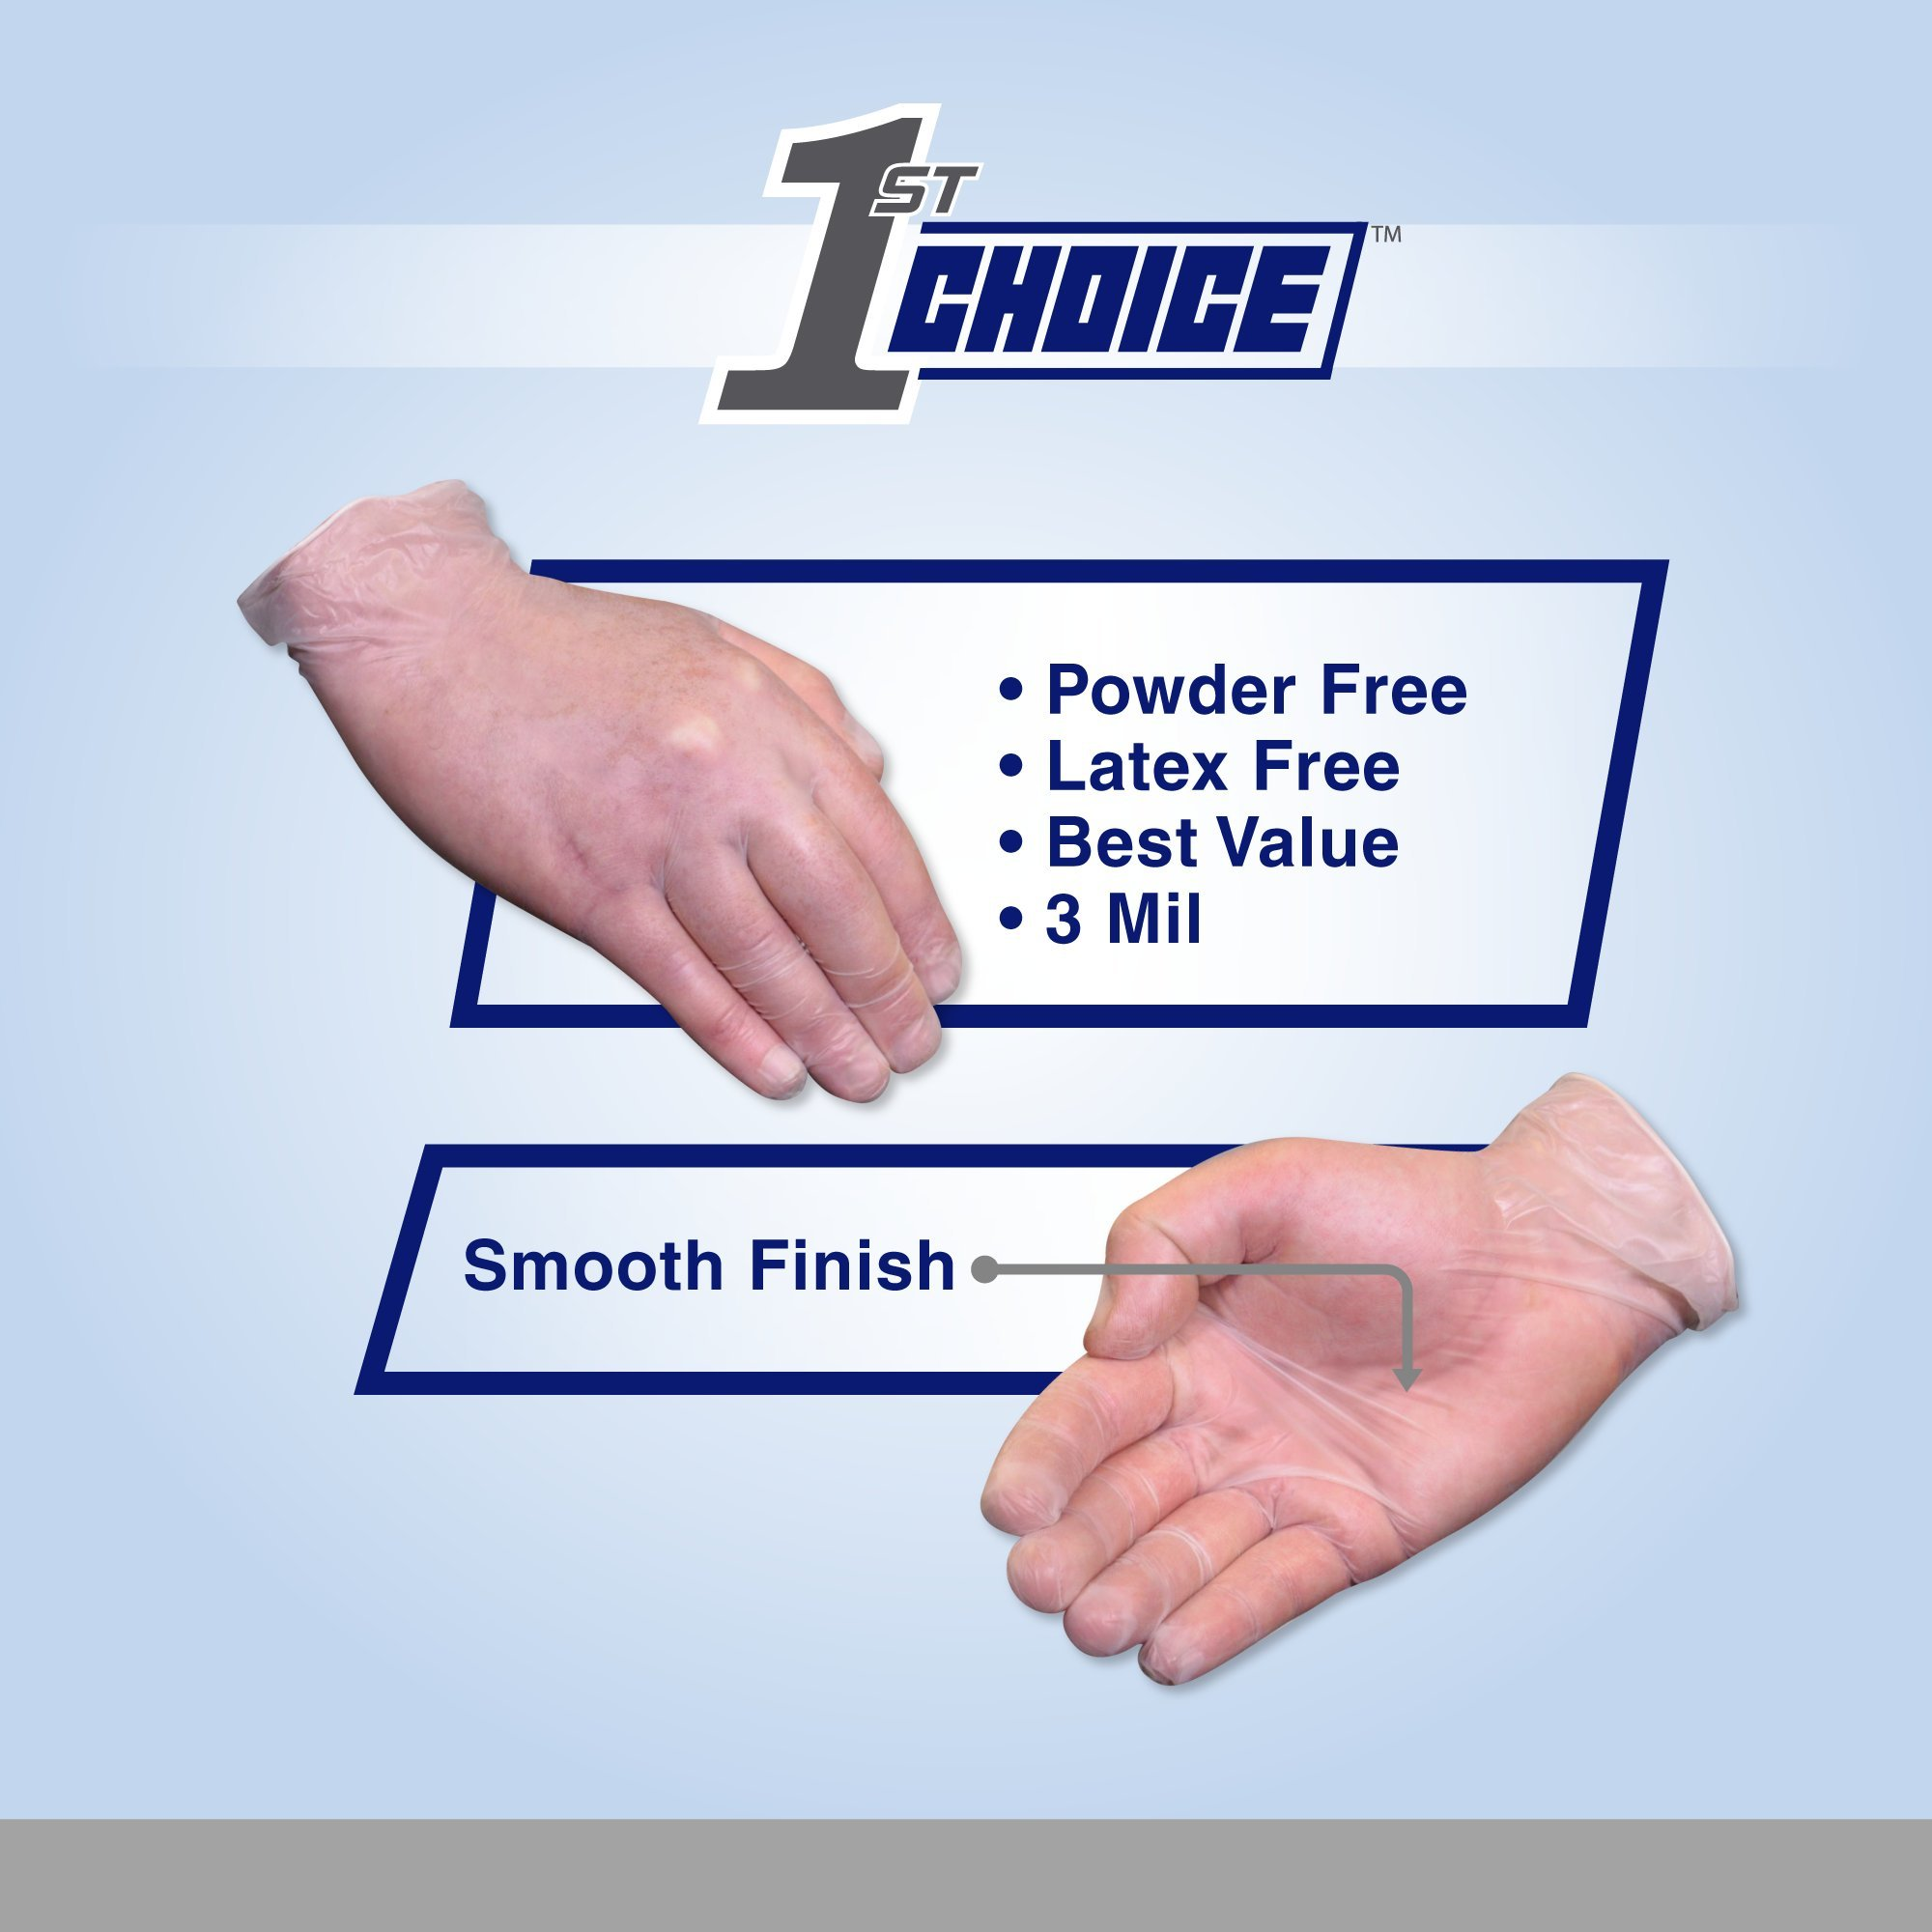 1st Choice Clear Vinyl 3 Mil Thick Disposable Gloves, Medium, Case of 1000 - Medical/Exam Grade, Powder-Free by 1st Choice (Image #3)